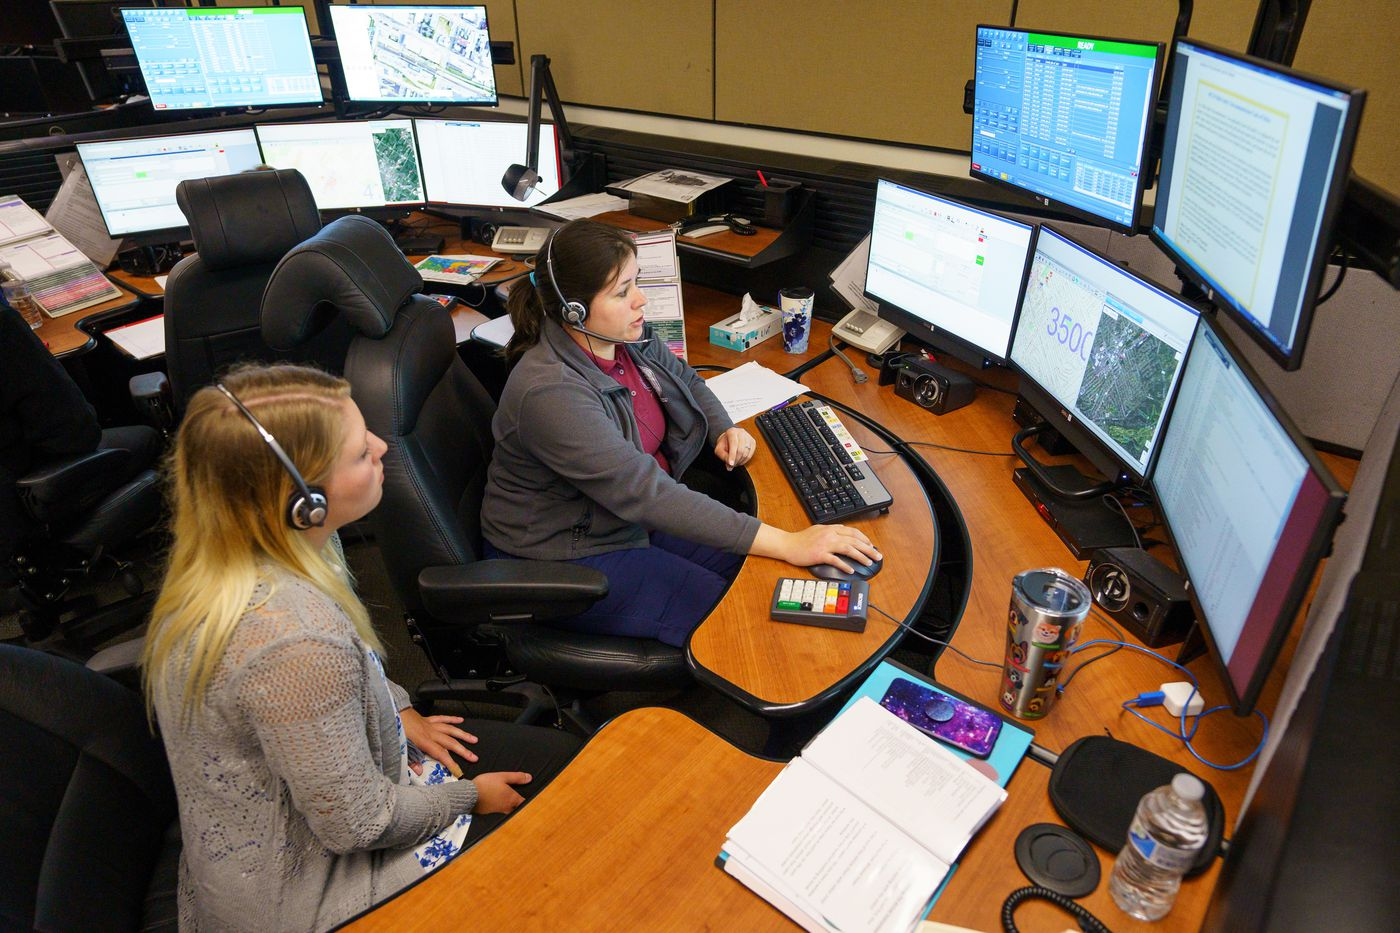 Montgomery County has a shortage of 911 dispatchers. They're racing to find more — and fast